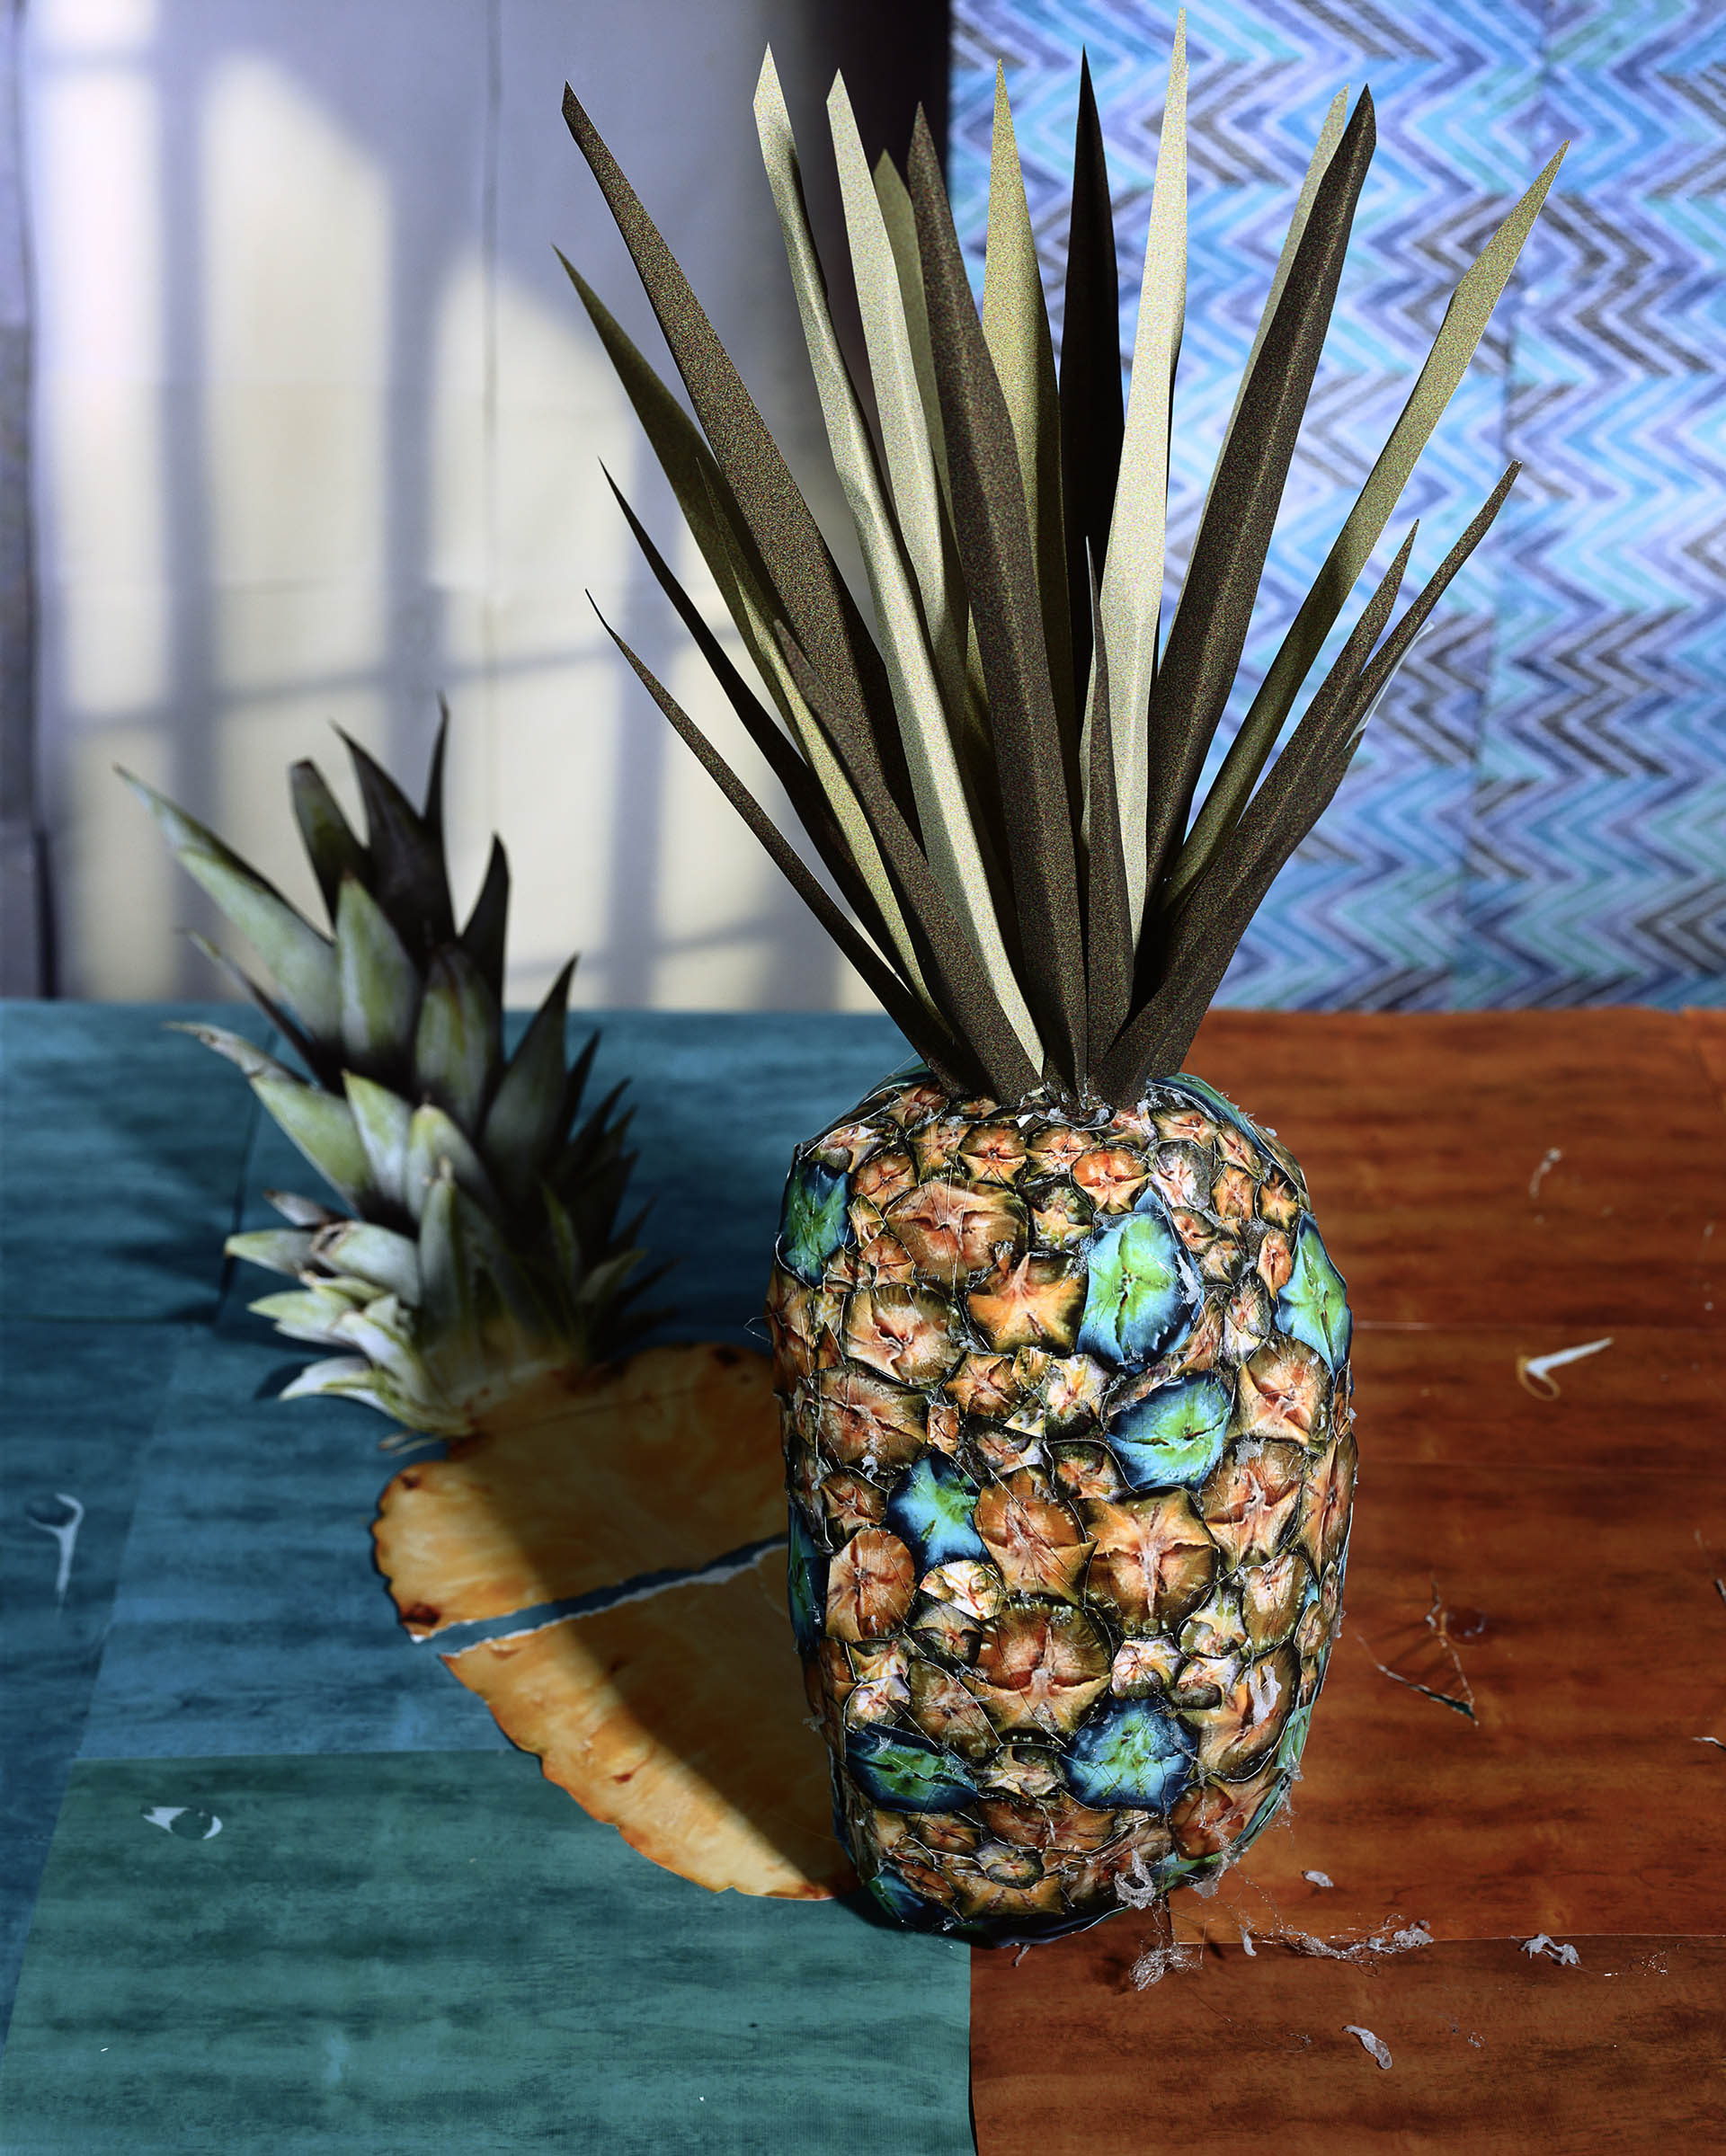 Fotó: Daniel Gordon: Pineapple and Shadow, 2011 © Daniel Gordon Courtesy the artist and James Fuentes Gallery, New York